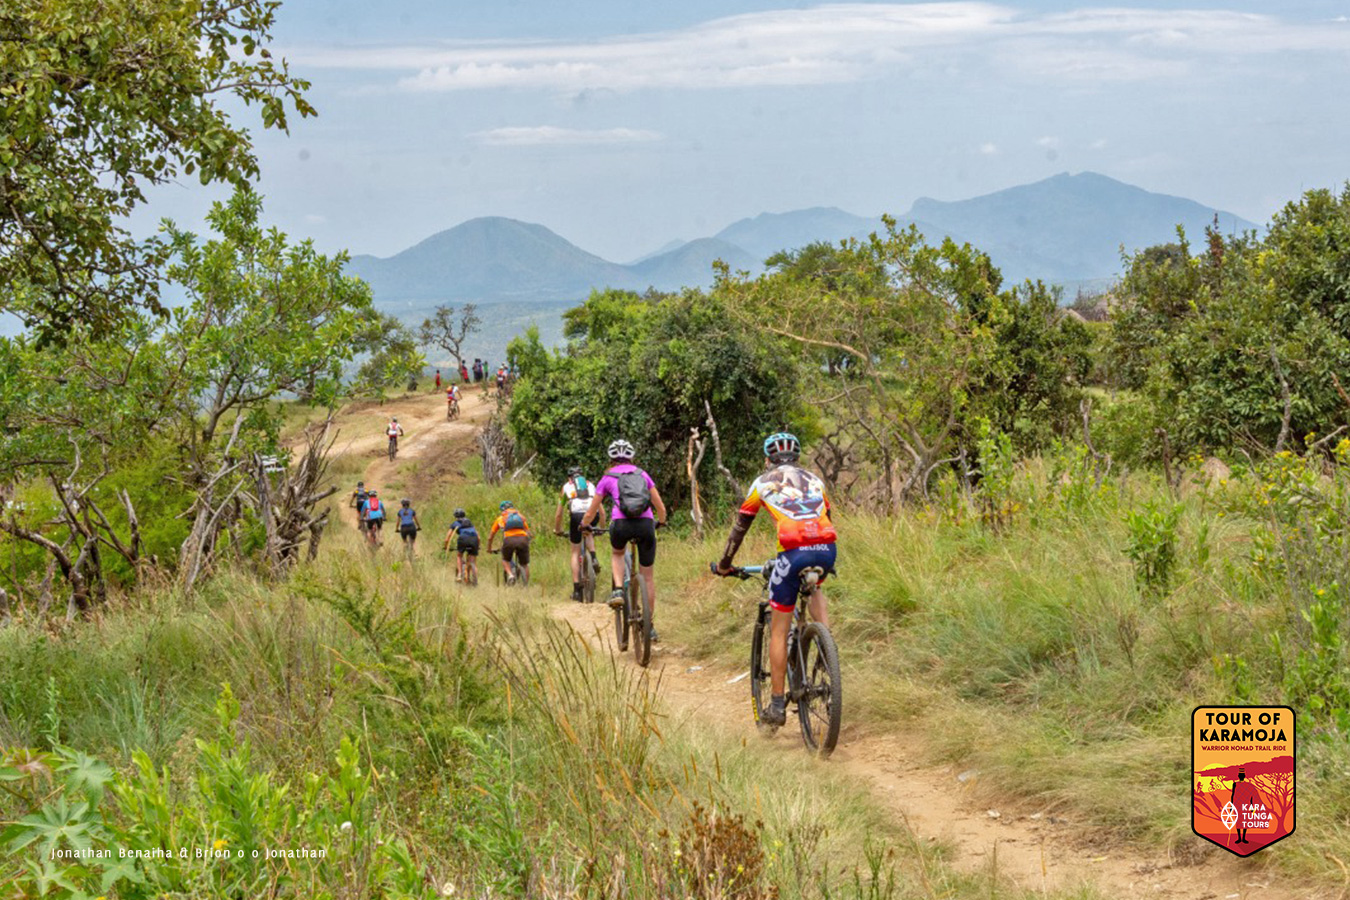 kara-tunga-tour-of-karamoja-uganda-africa-warrior-nomad-trail-bike-cycle-gravel-event-3